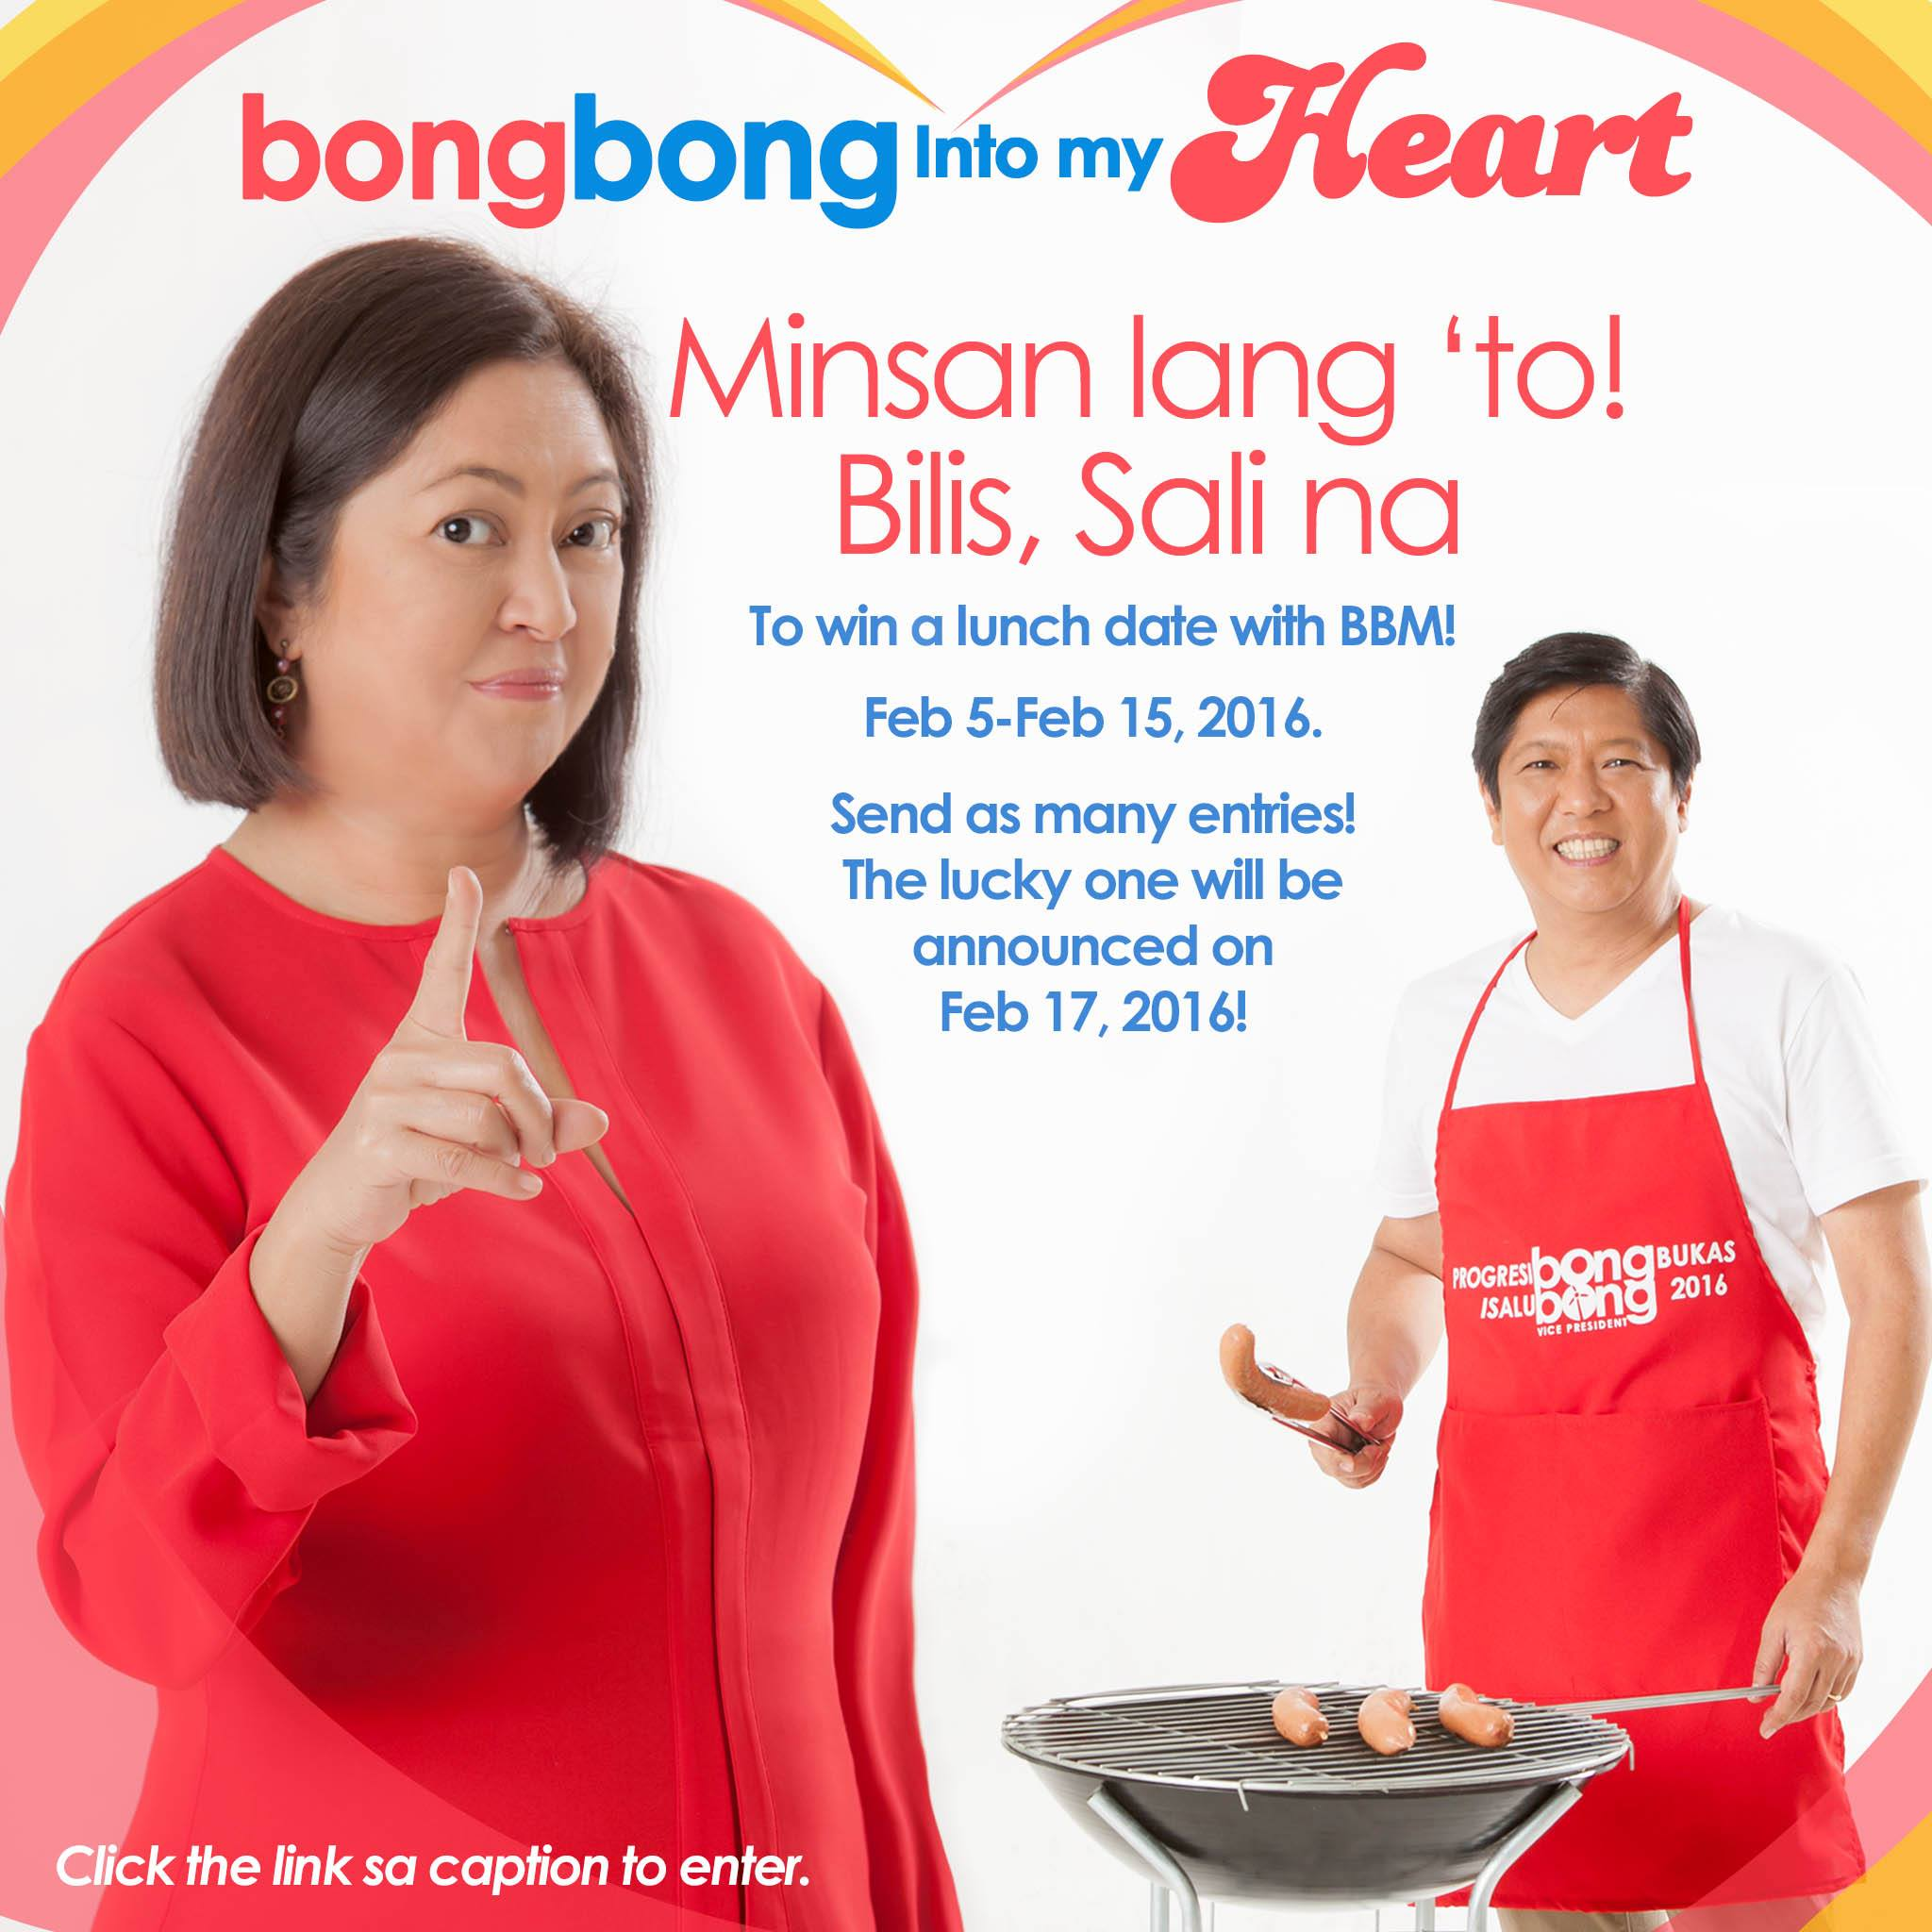 Presidential candidate Sen. Bongbong Marcos holds a contest where one wins a dinner date with the senator (Photo from the official Facebook page of Sen. Marcos).